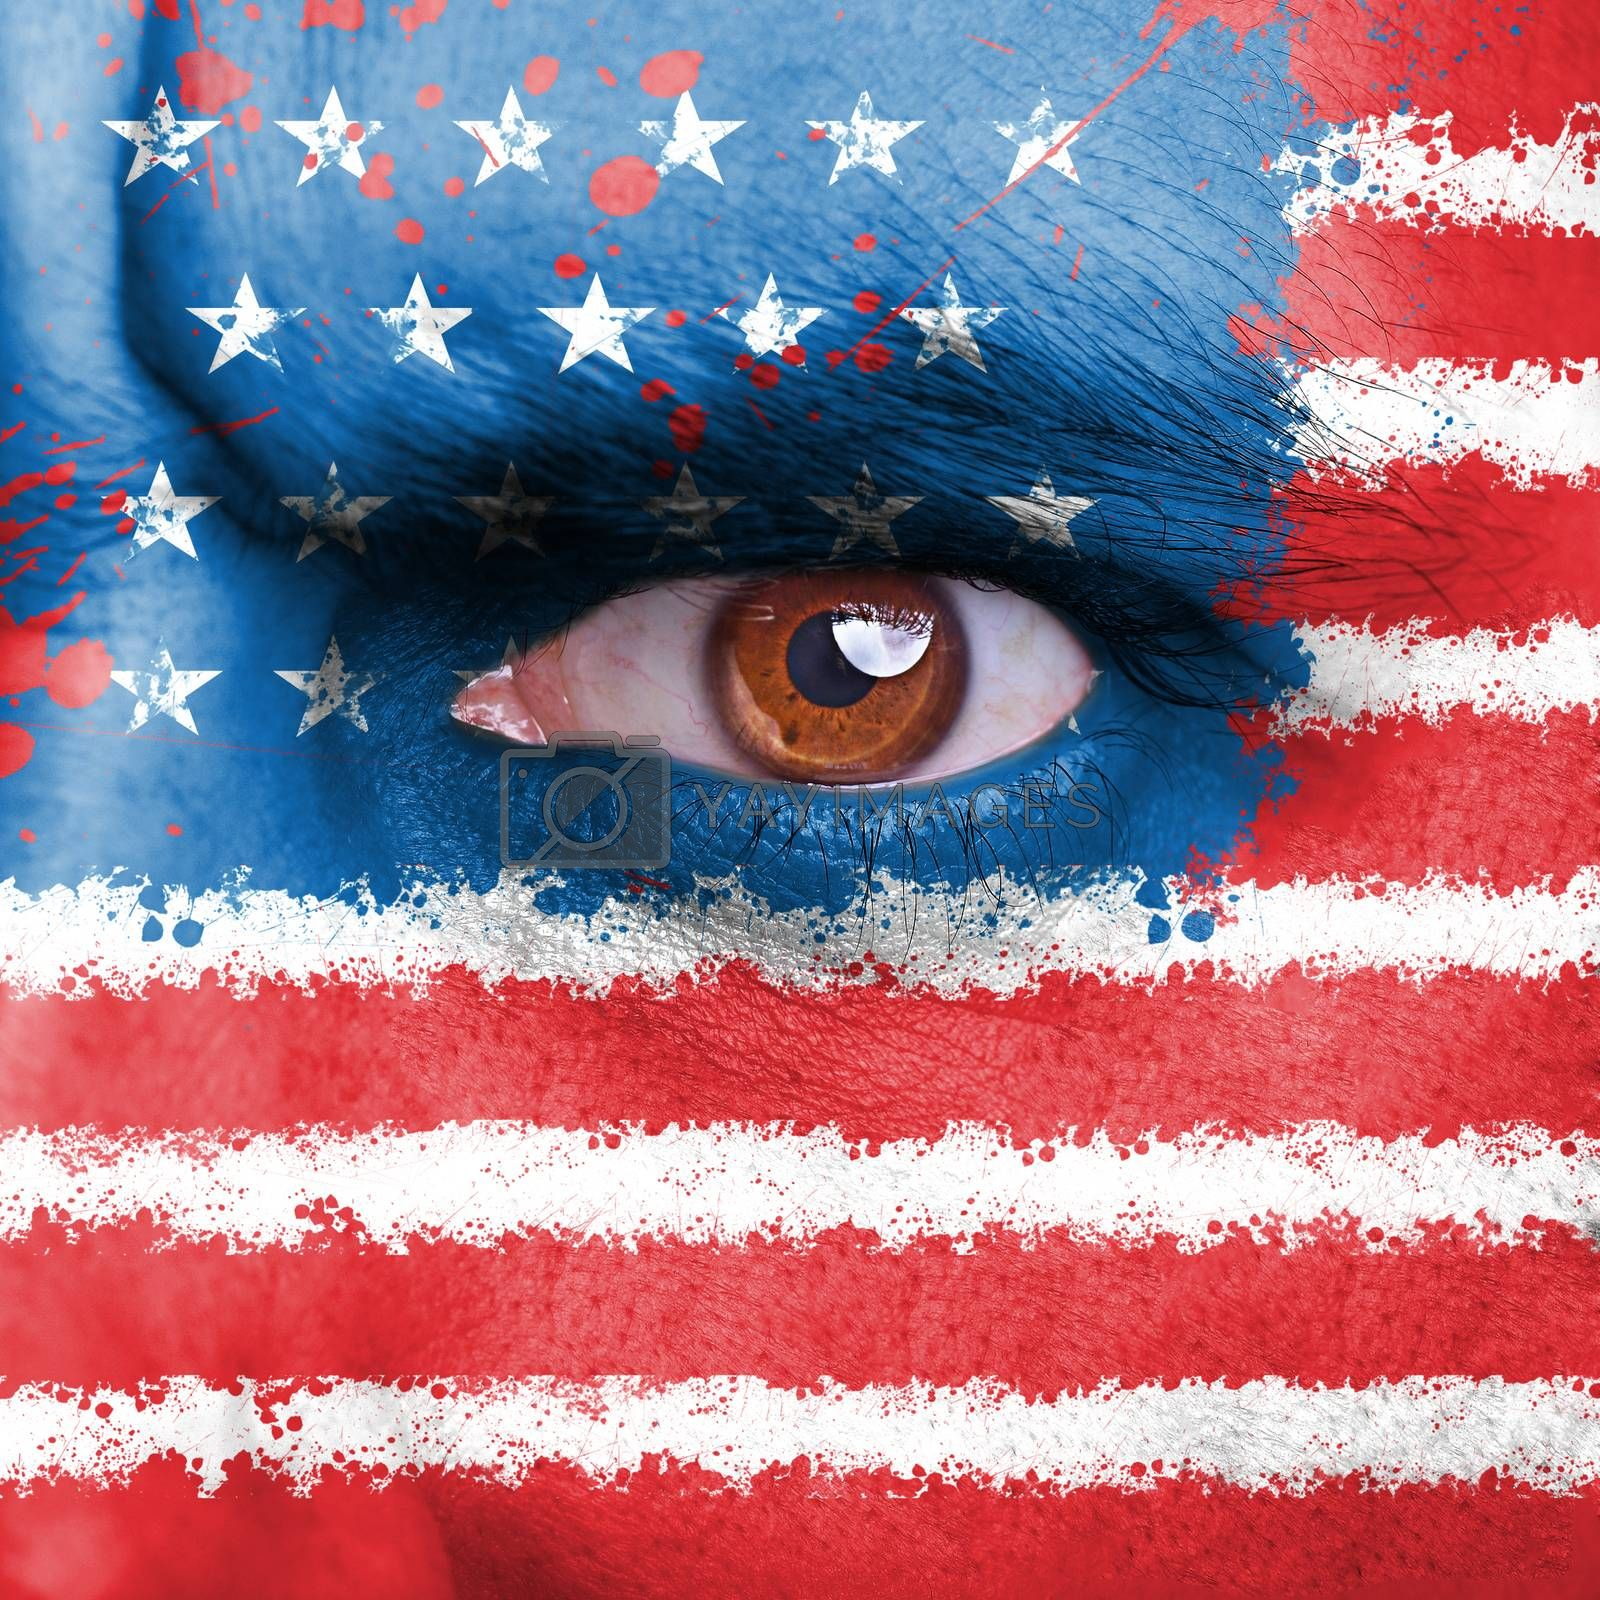 USA flag painted on angry man face